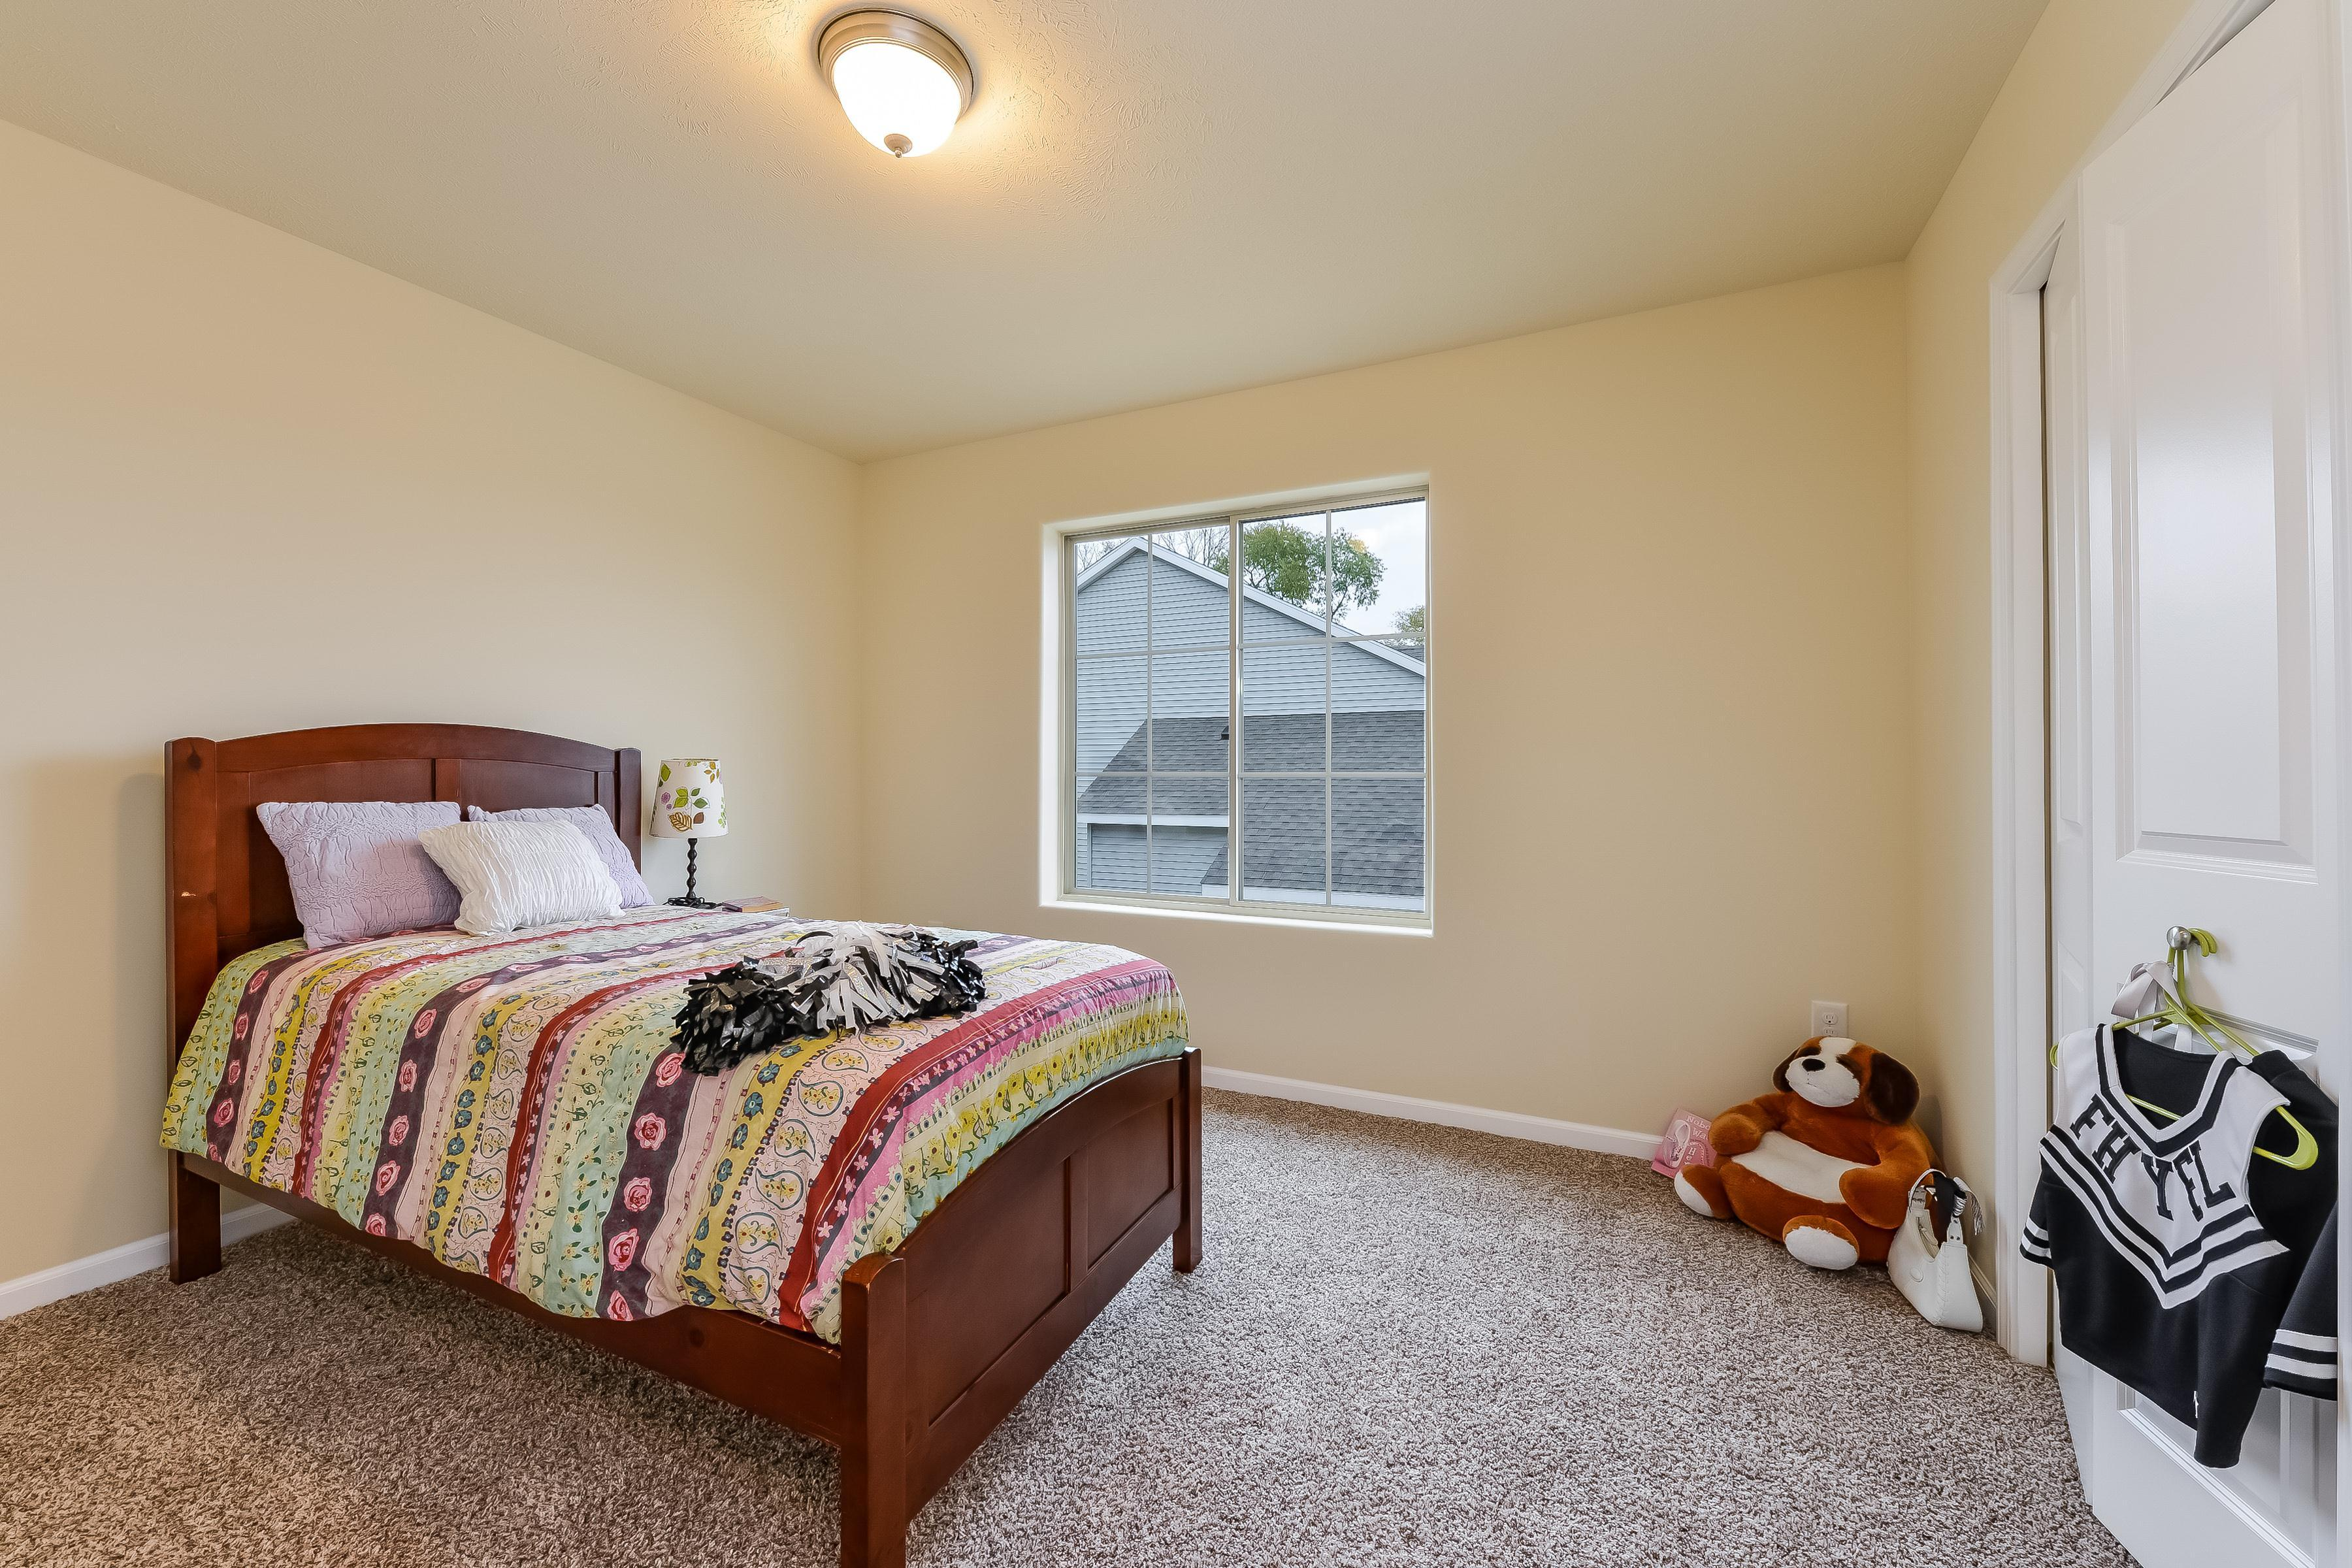 Bedroom featured in the Vienna By Sable Homes in Grand Rapids, MI